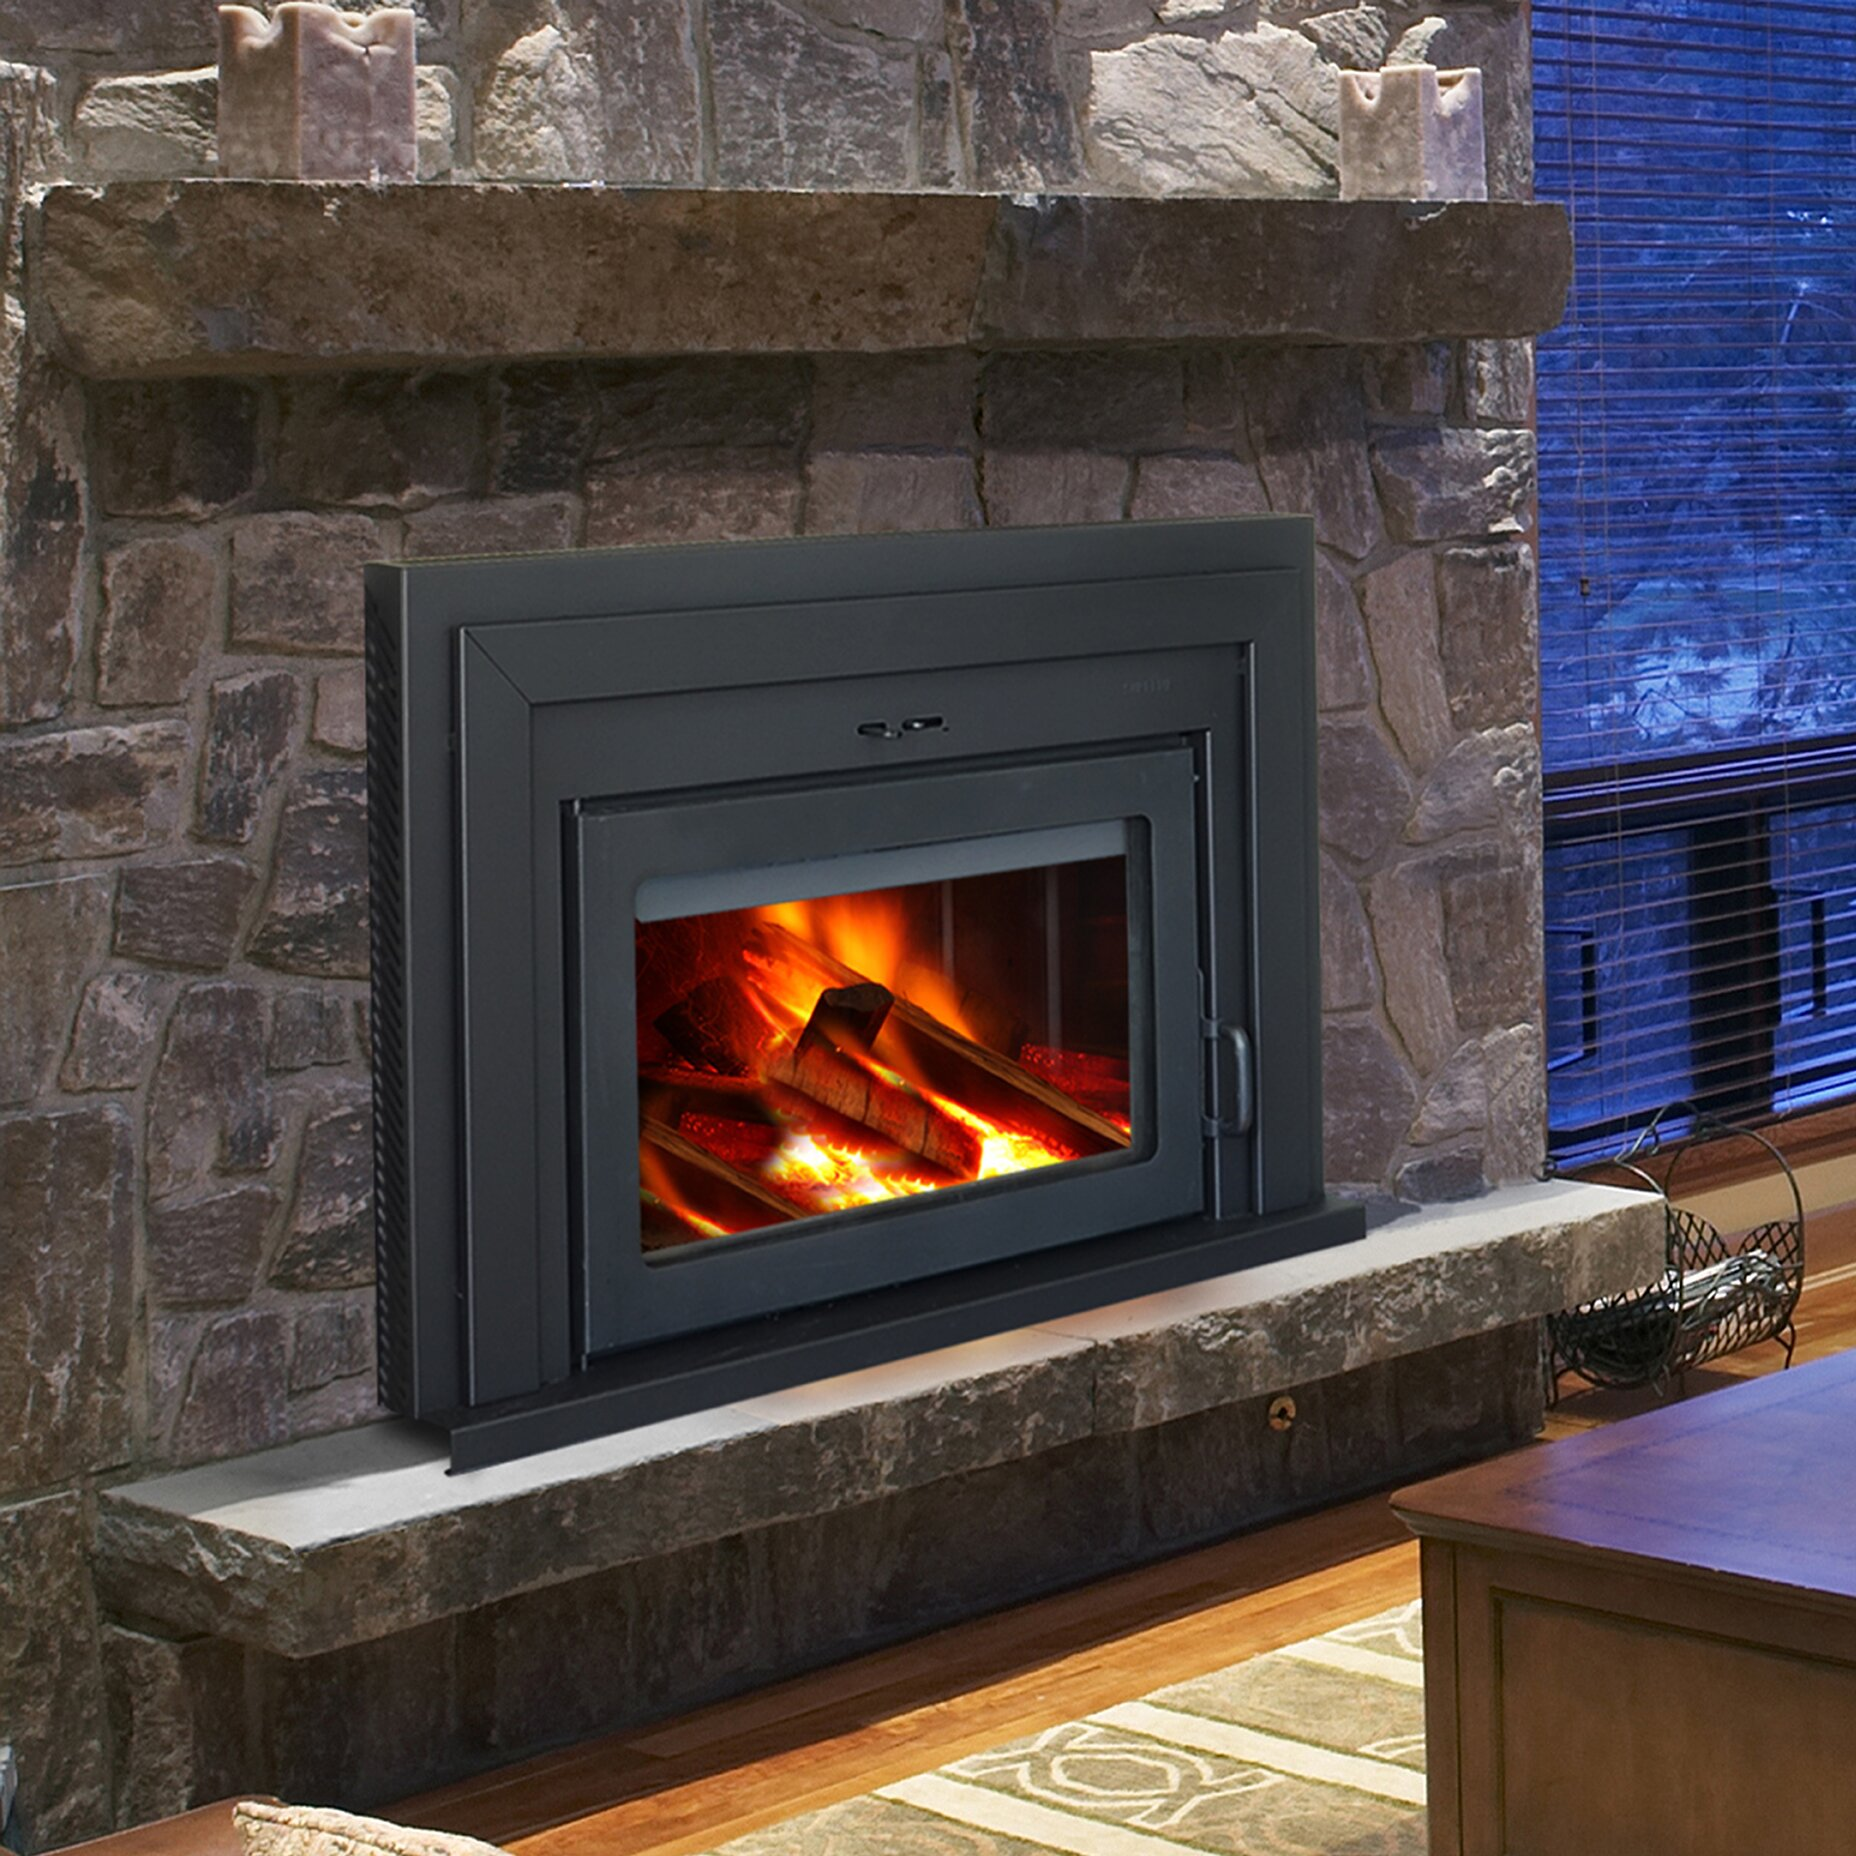 Fireplaces Brands Like Heat Glo Fmi Empire And More Country Flame ...